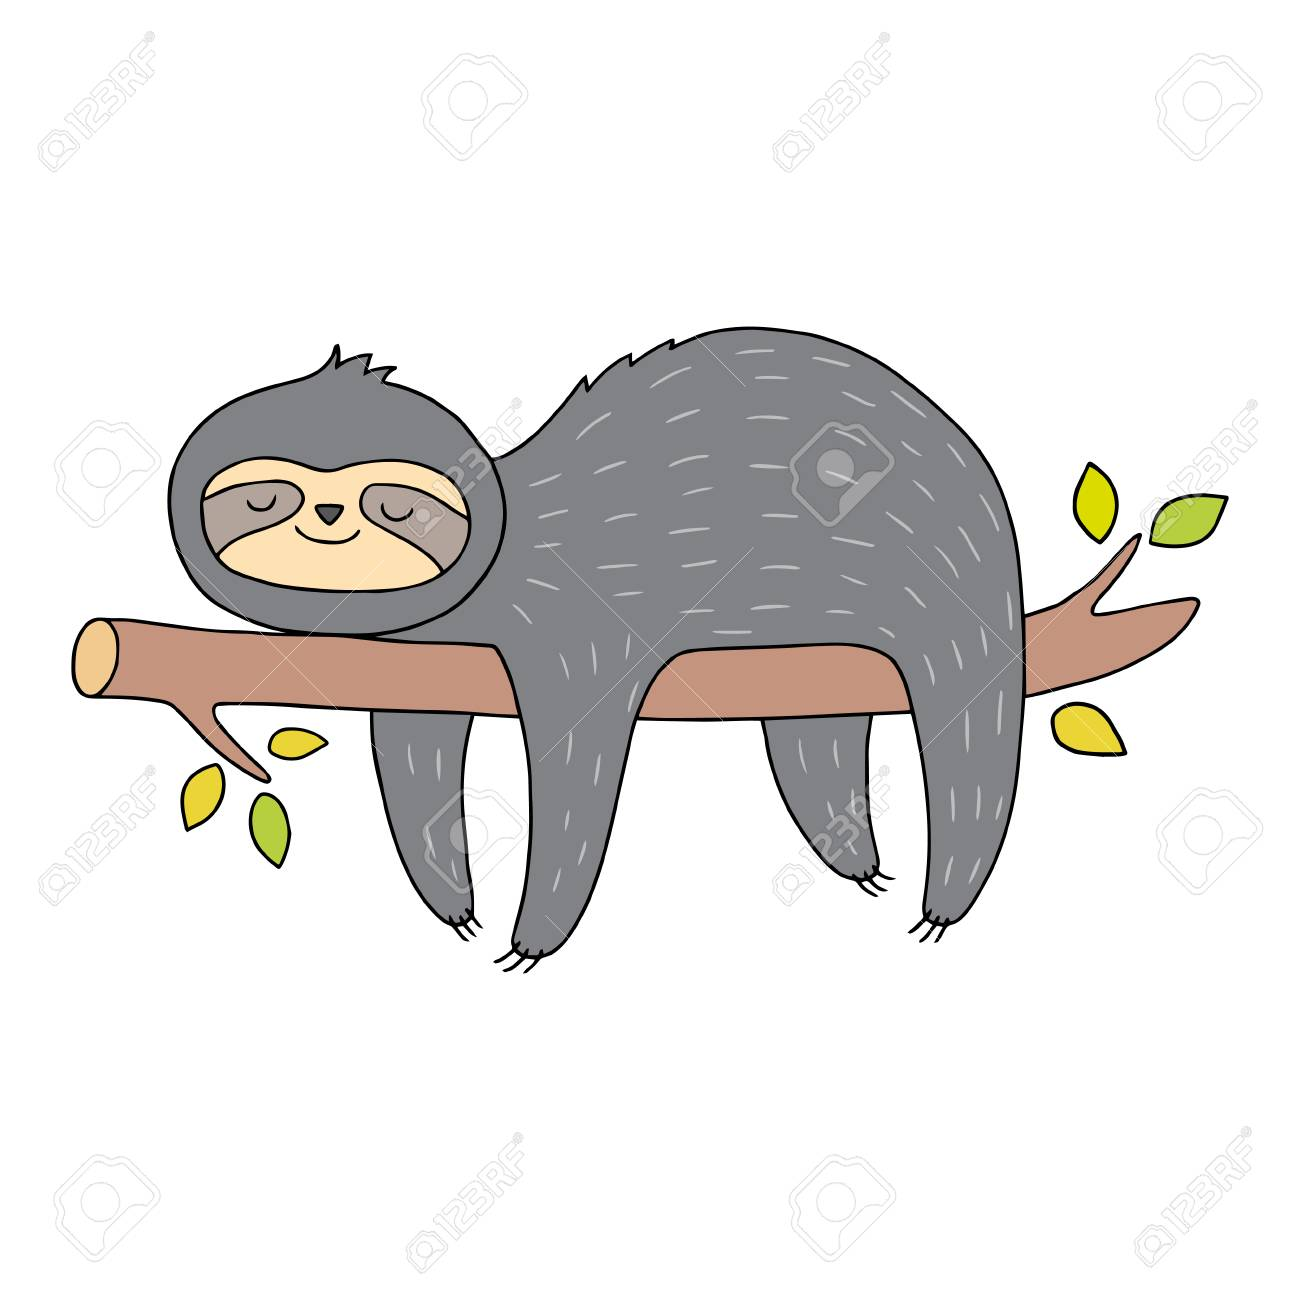 Cute sloth illustration. Vector drawing with outlines. Animal...